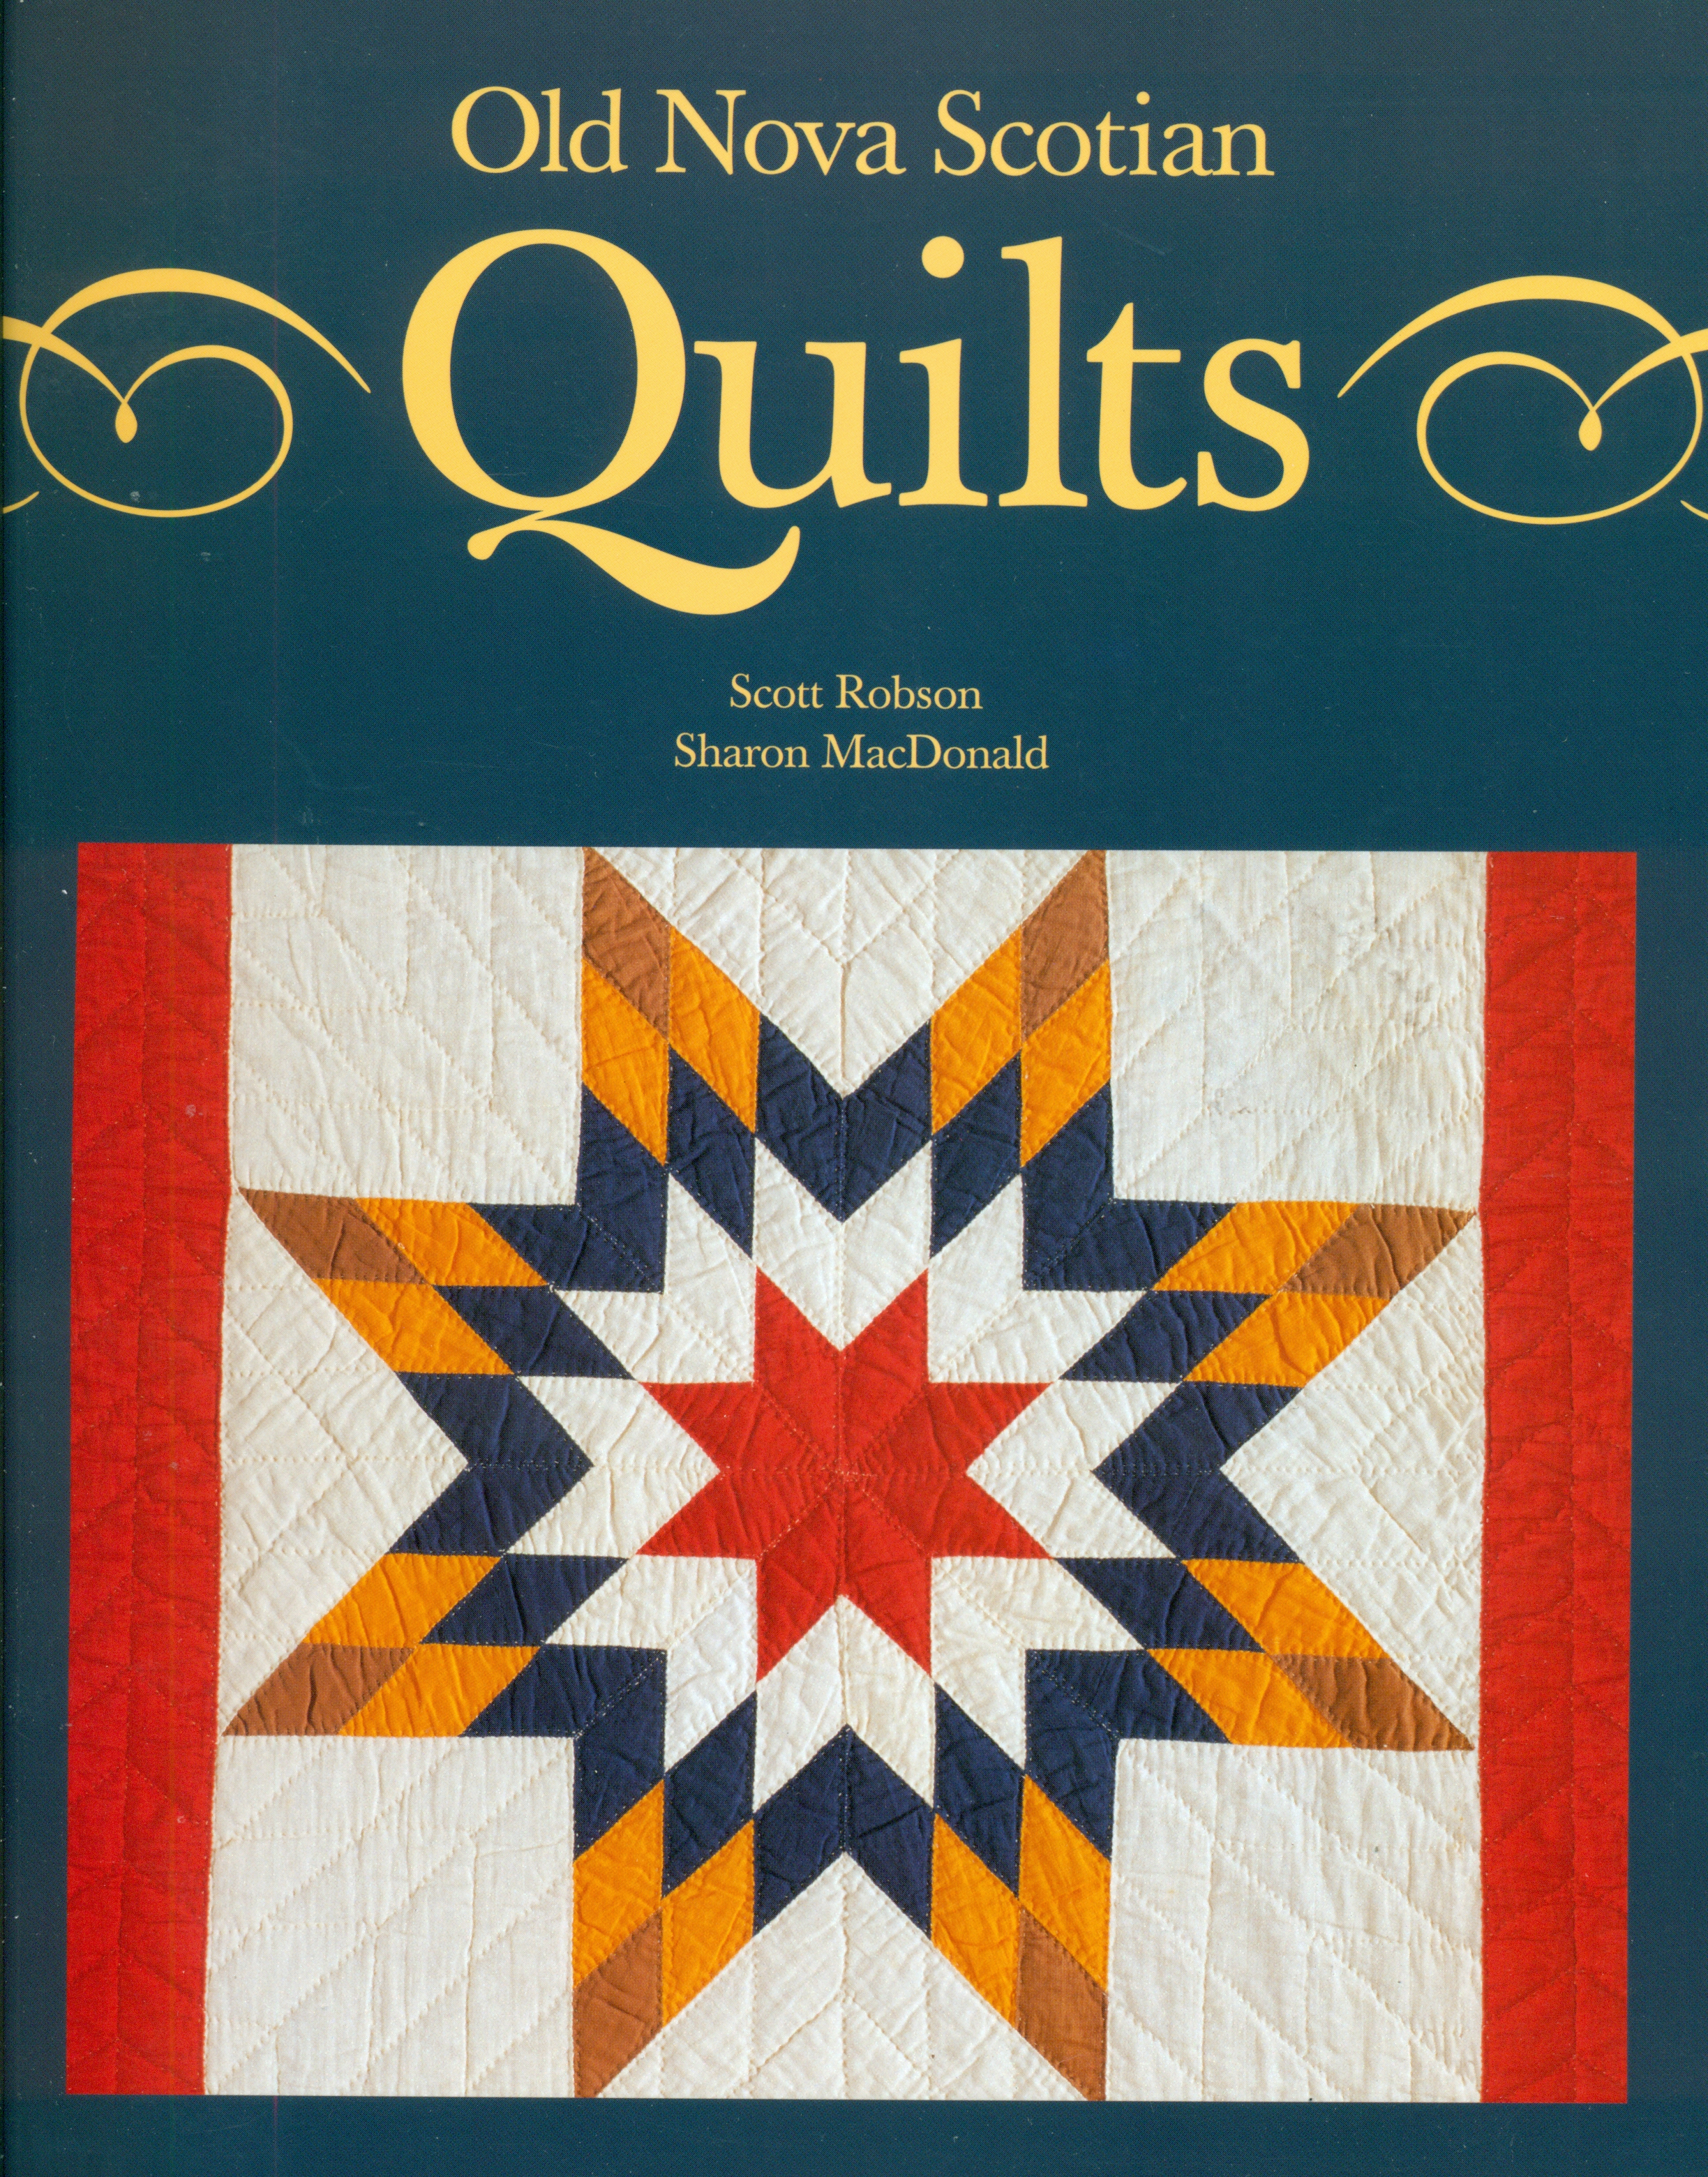 Old Nova Scotian Quilts